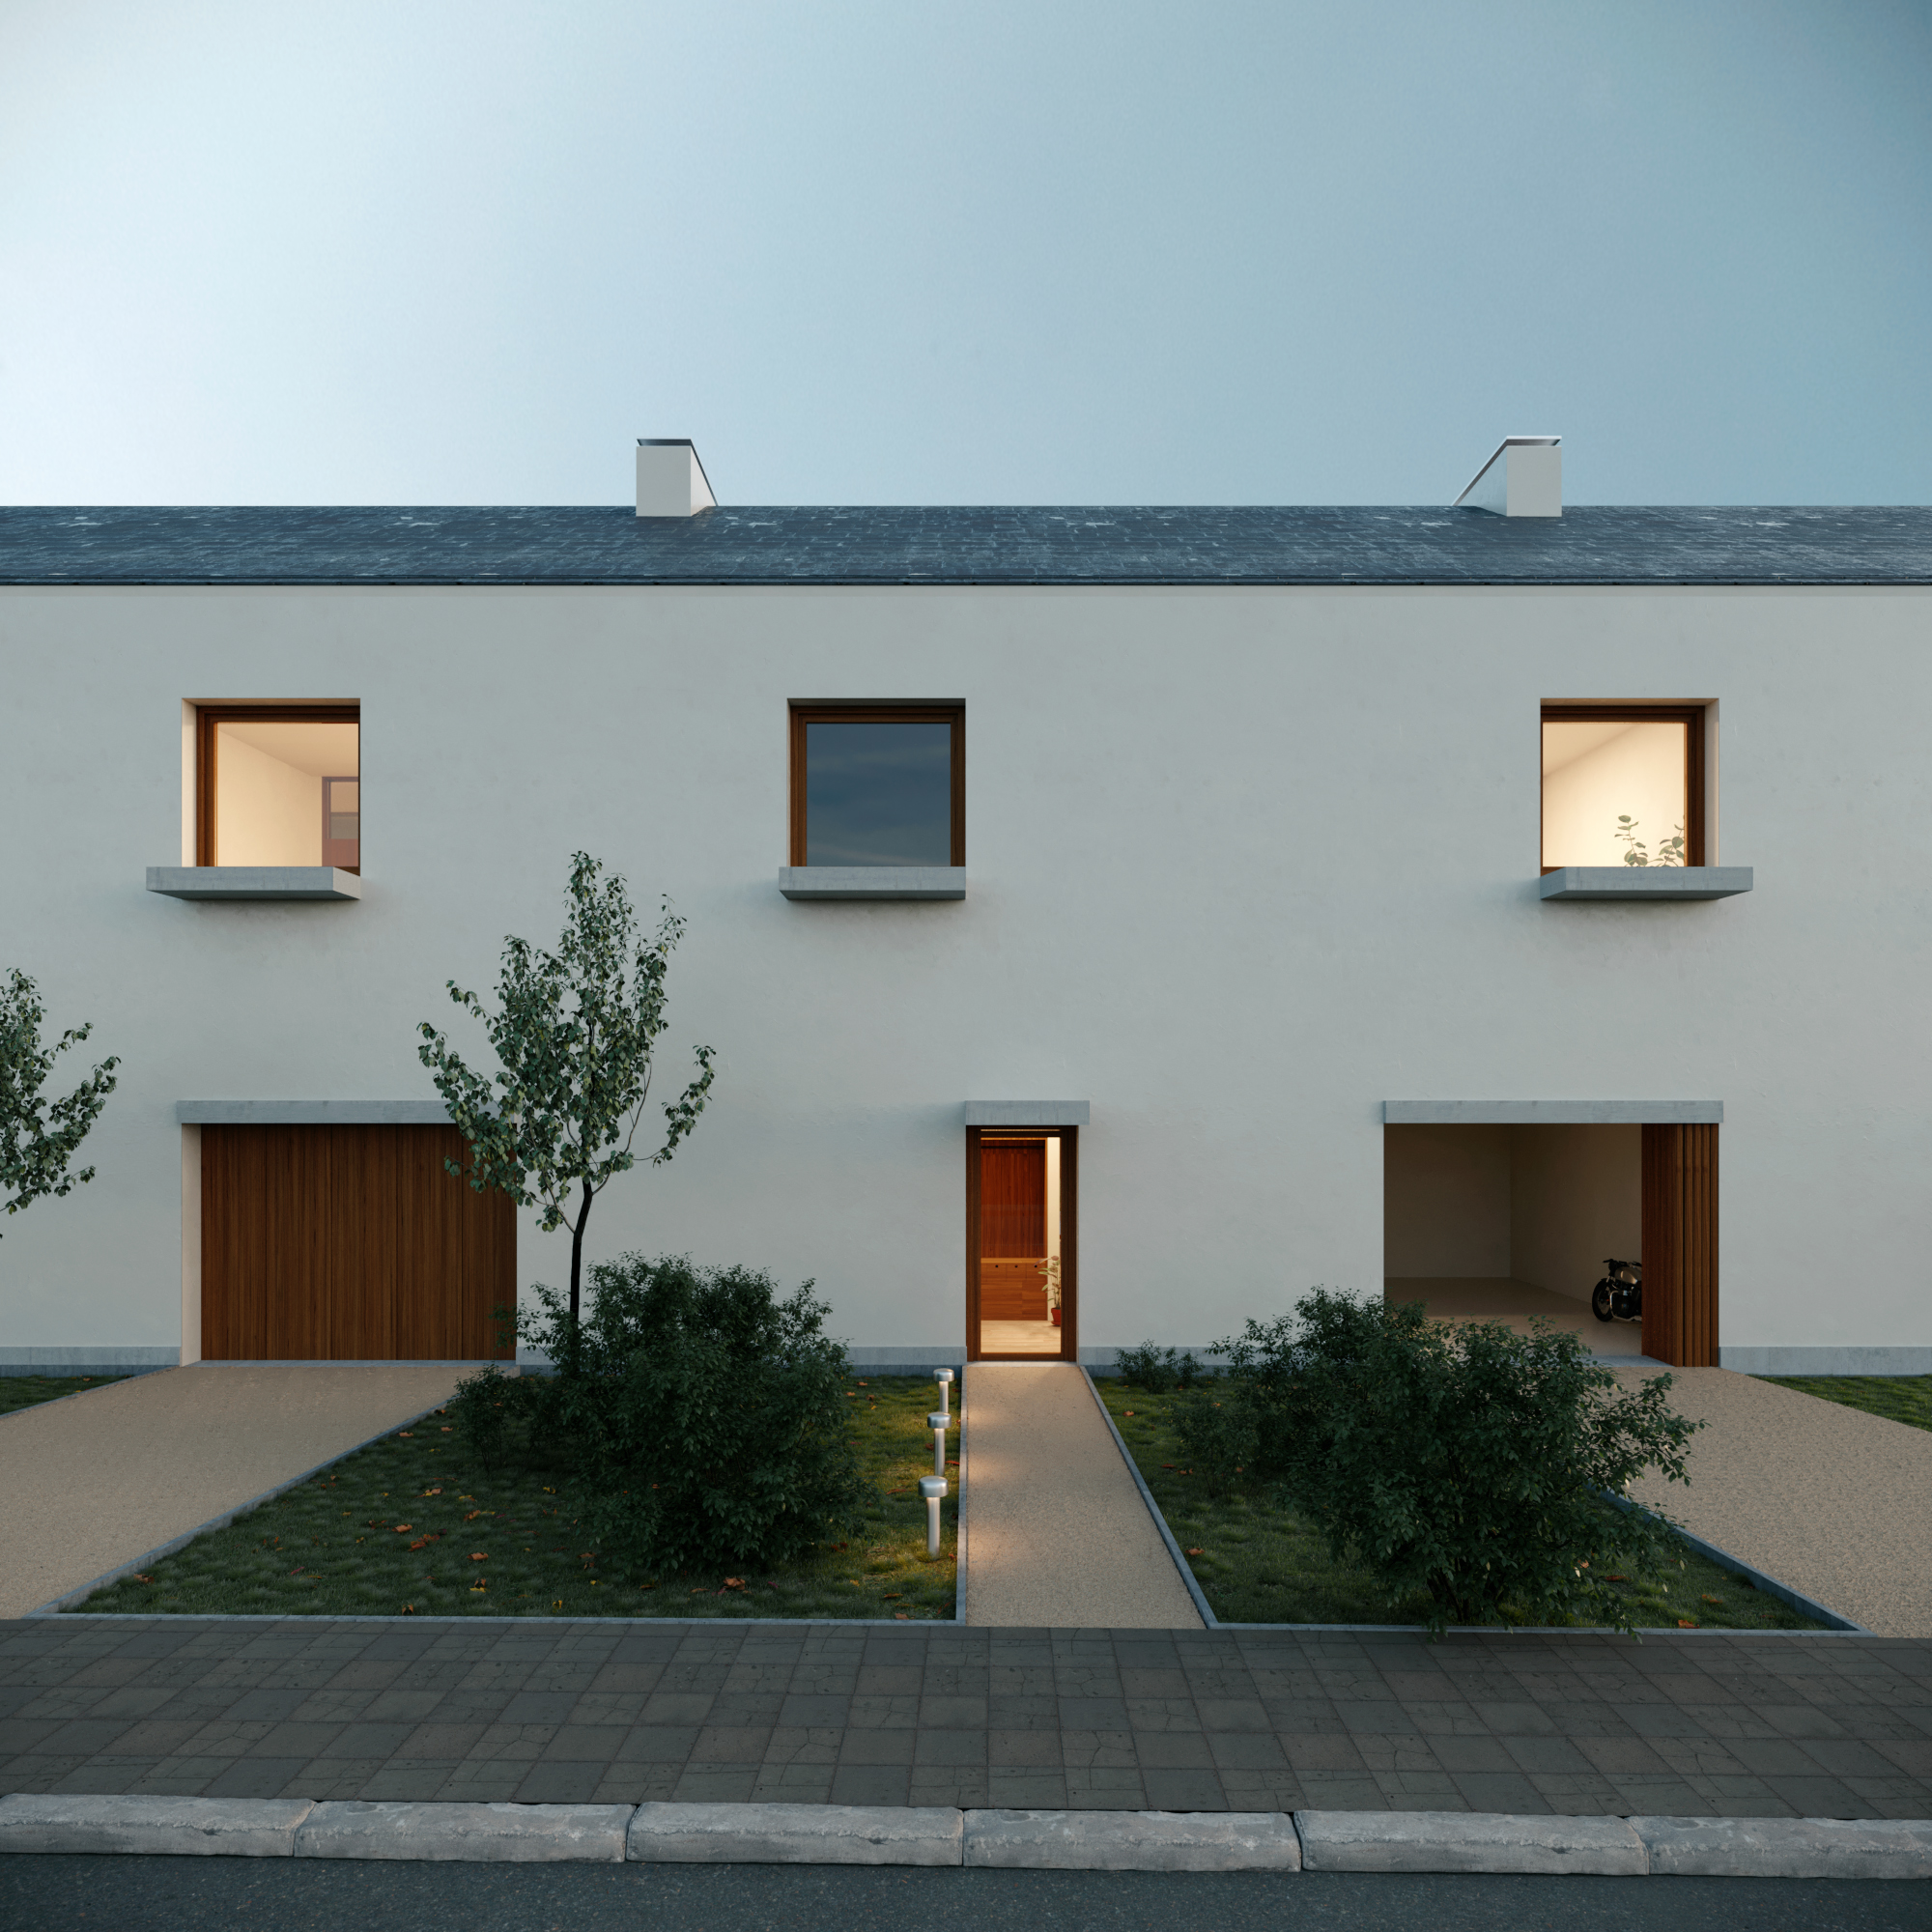 Architectural Visualization for an Housing project in Luxembourg by Alban Wagener Architecture.